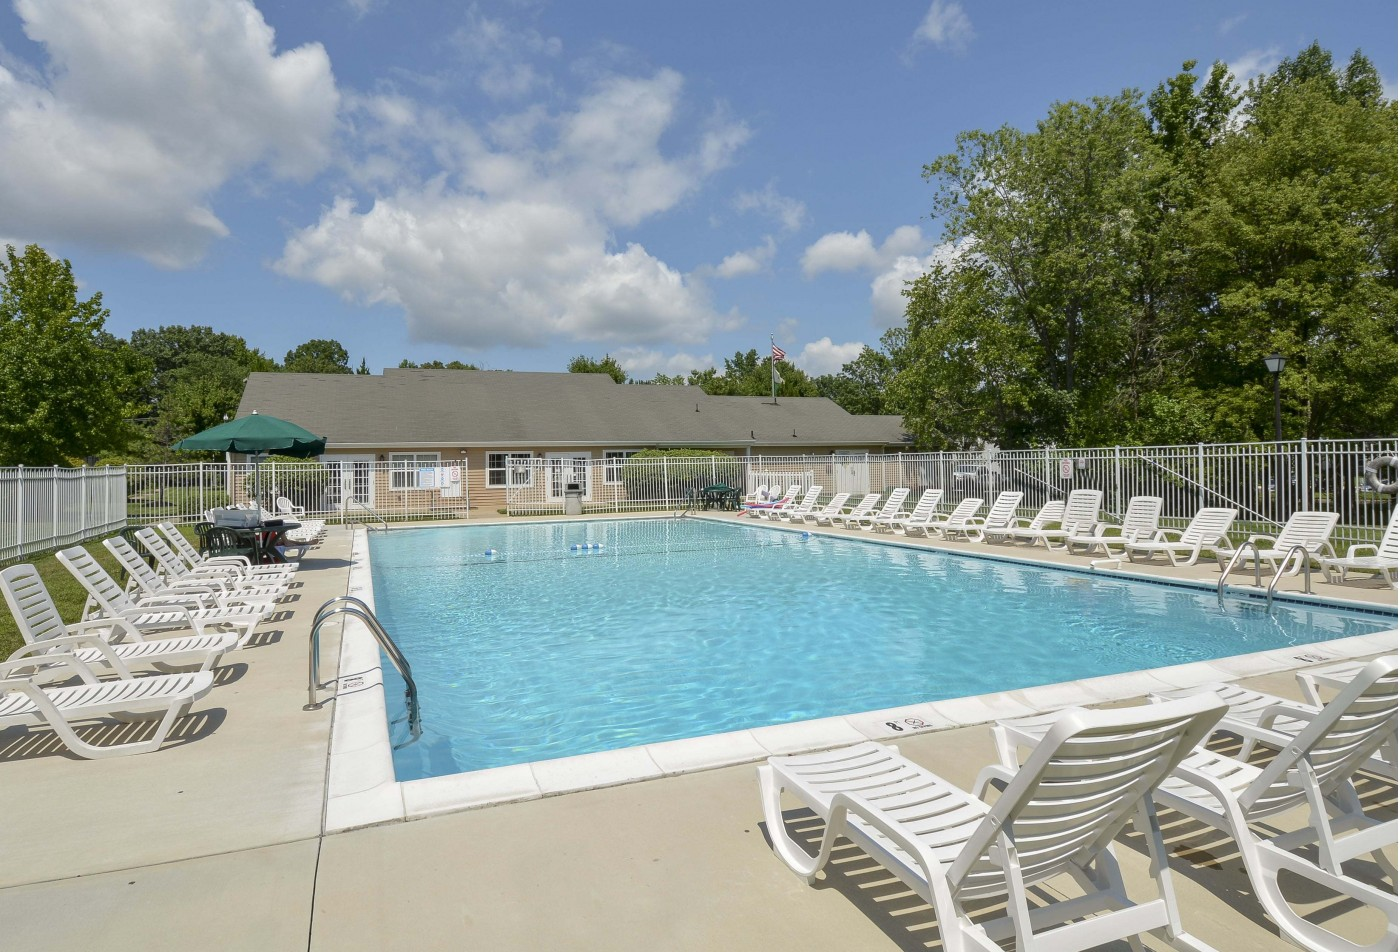 State-of-the-Art Fitness Center   Apartment Homes in Marlton, NJ   Willlow Ridge Village Apartments